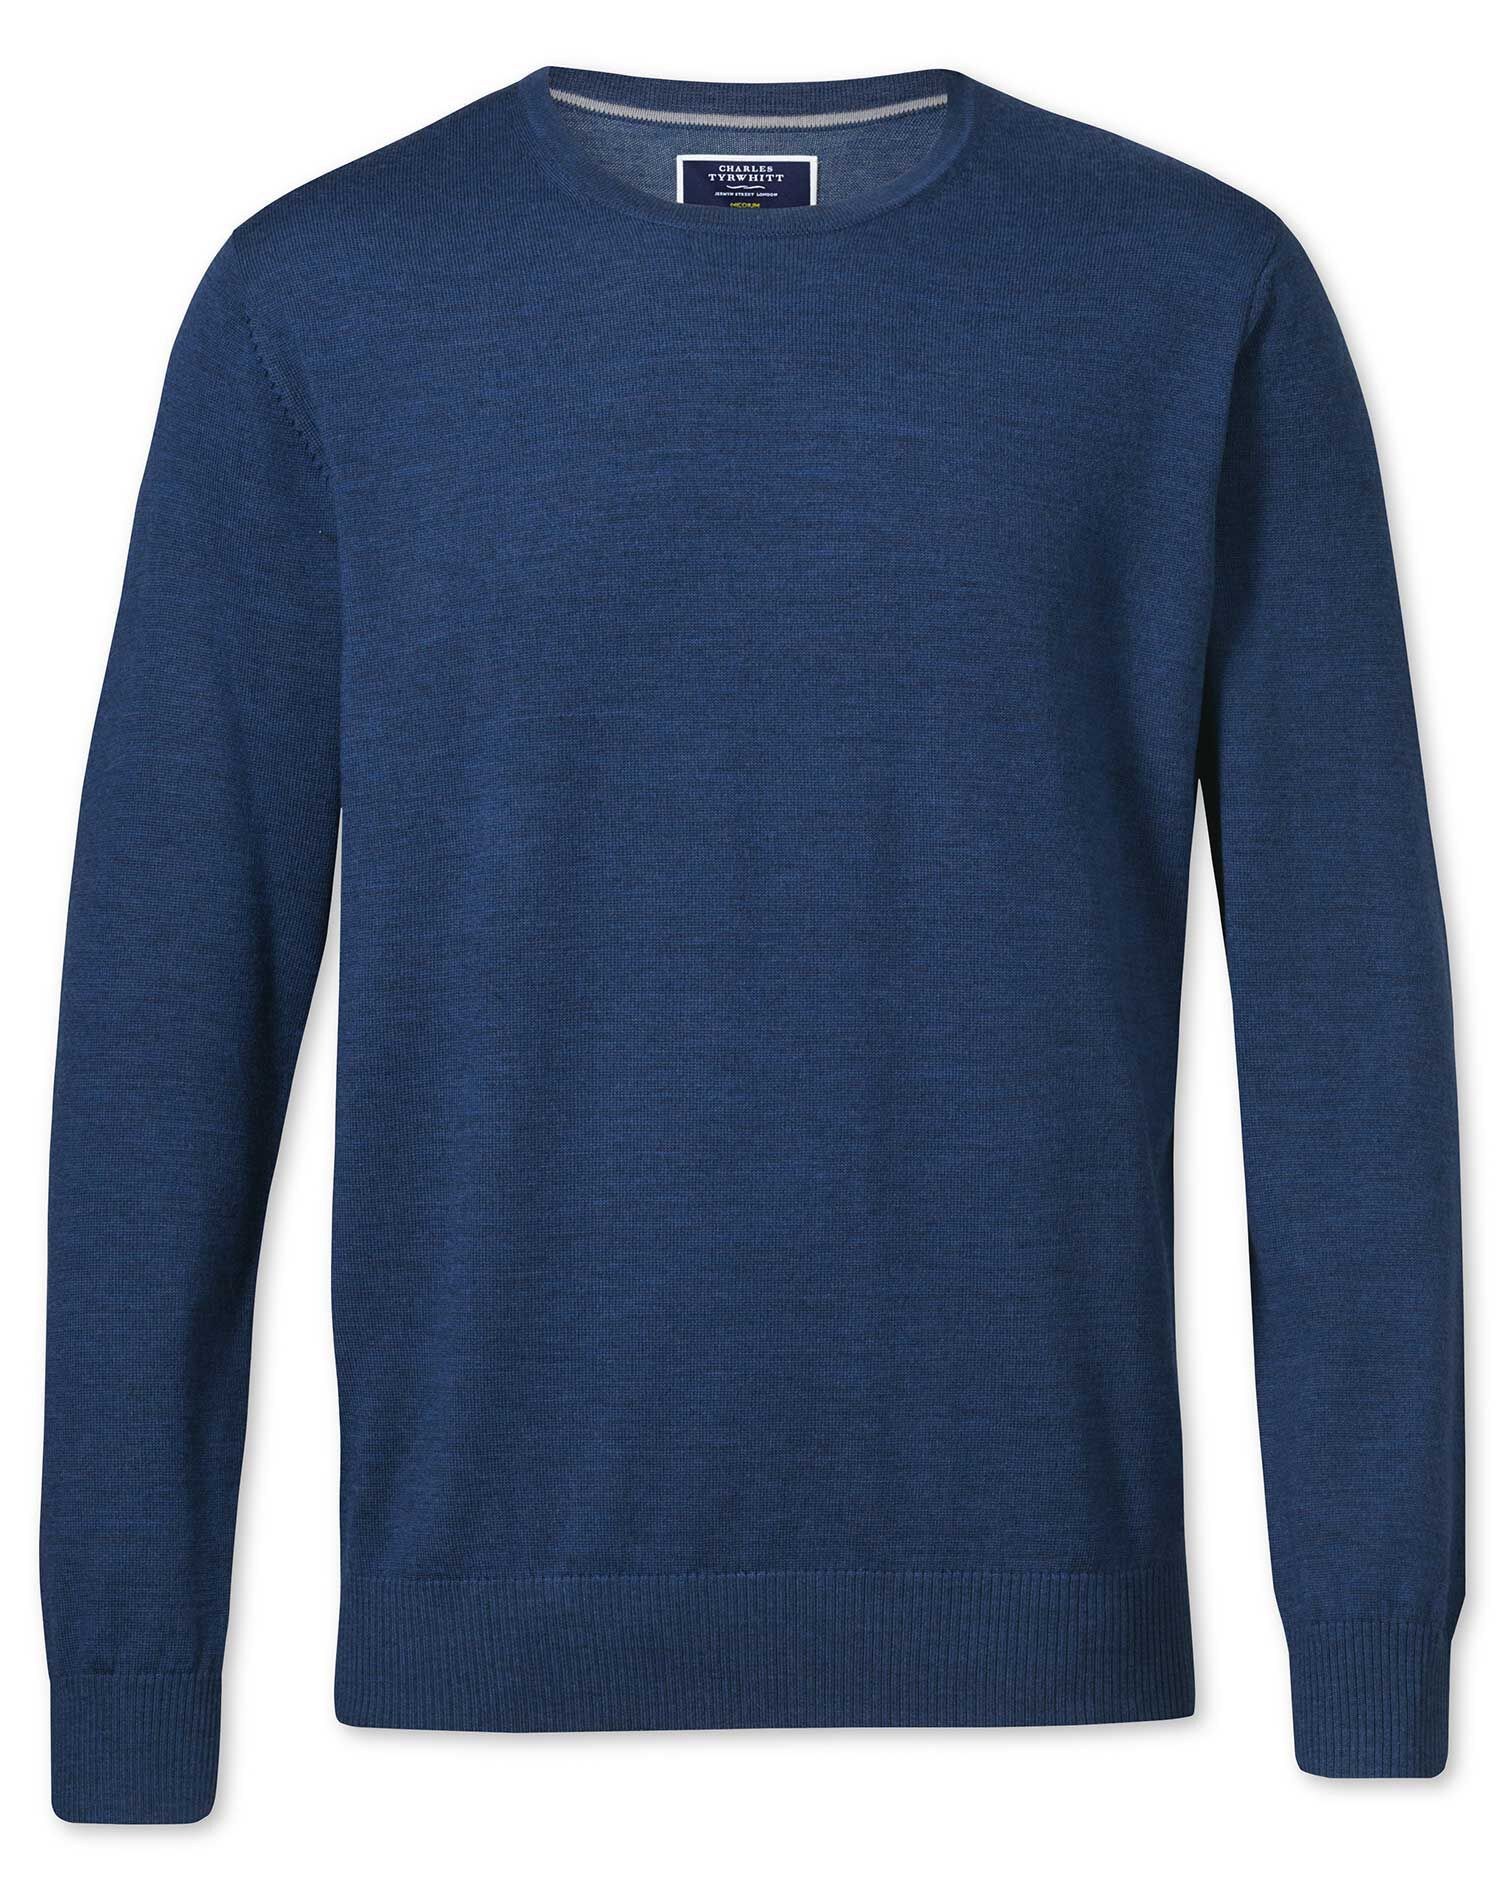 Mid Blue Merino Wool Crew Neck Jumper Size XL by Charles Tyrwhitt